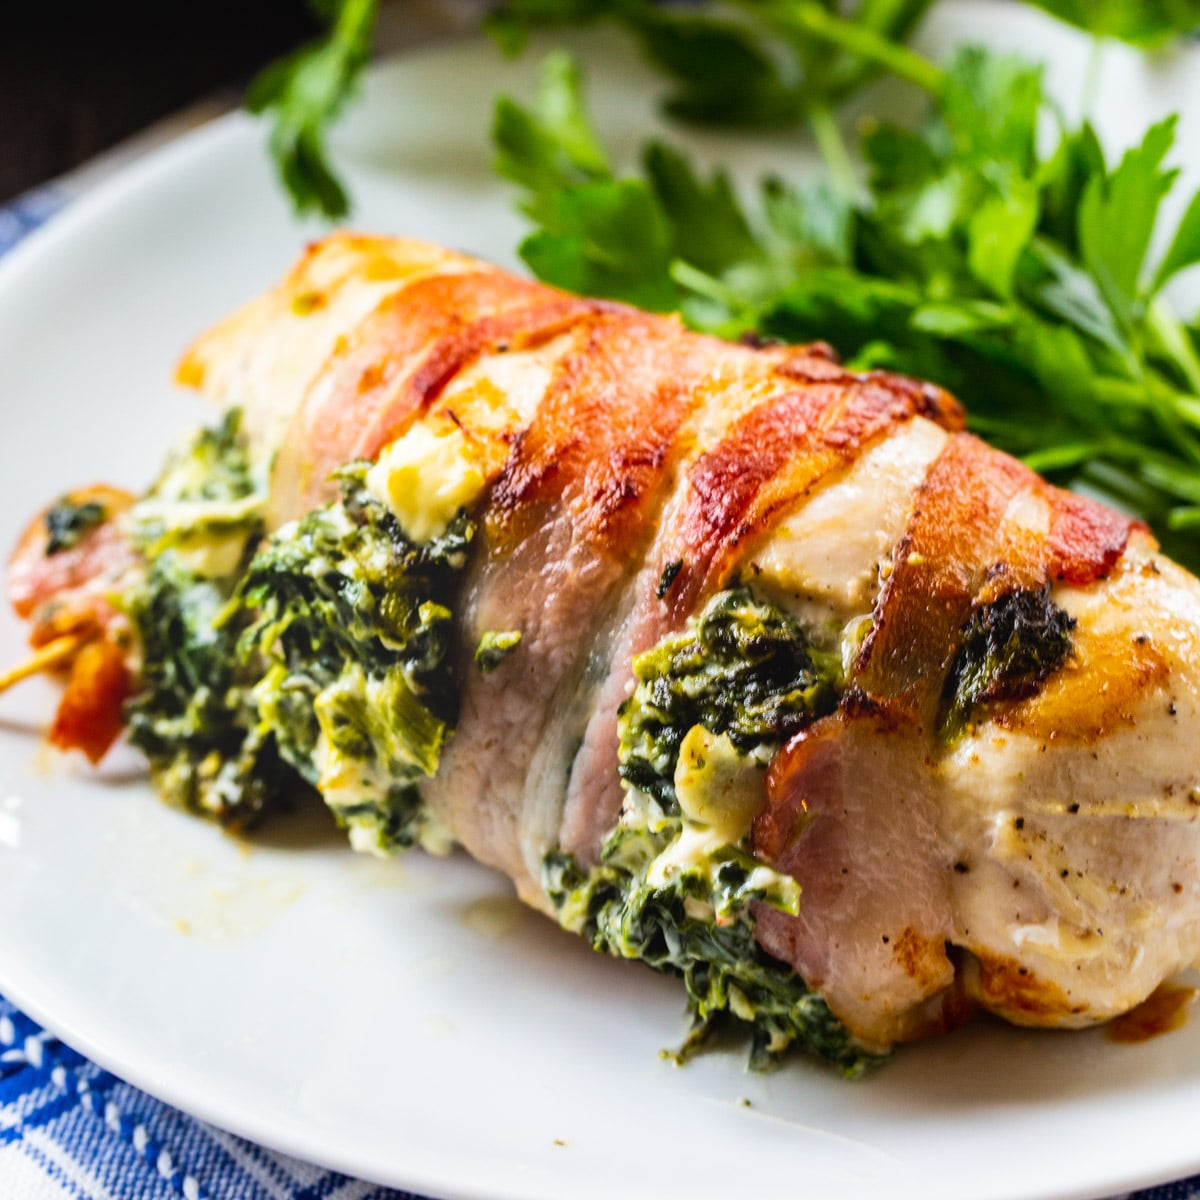 Bacon Wrapped Spinach and Feta Stuffed Chicken Breast on a plate with salad.